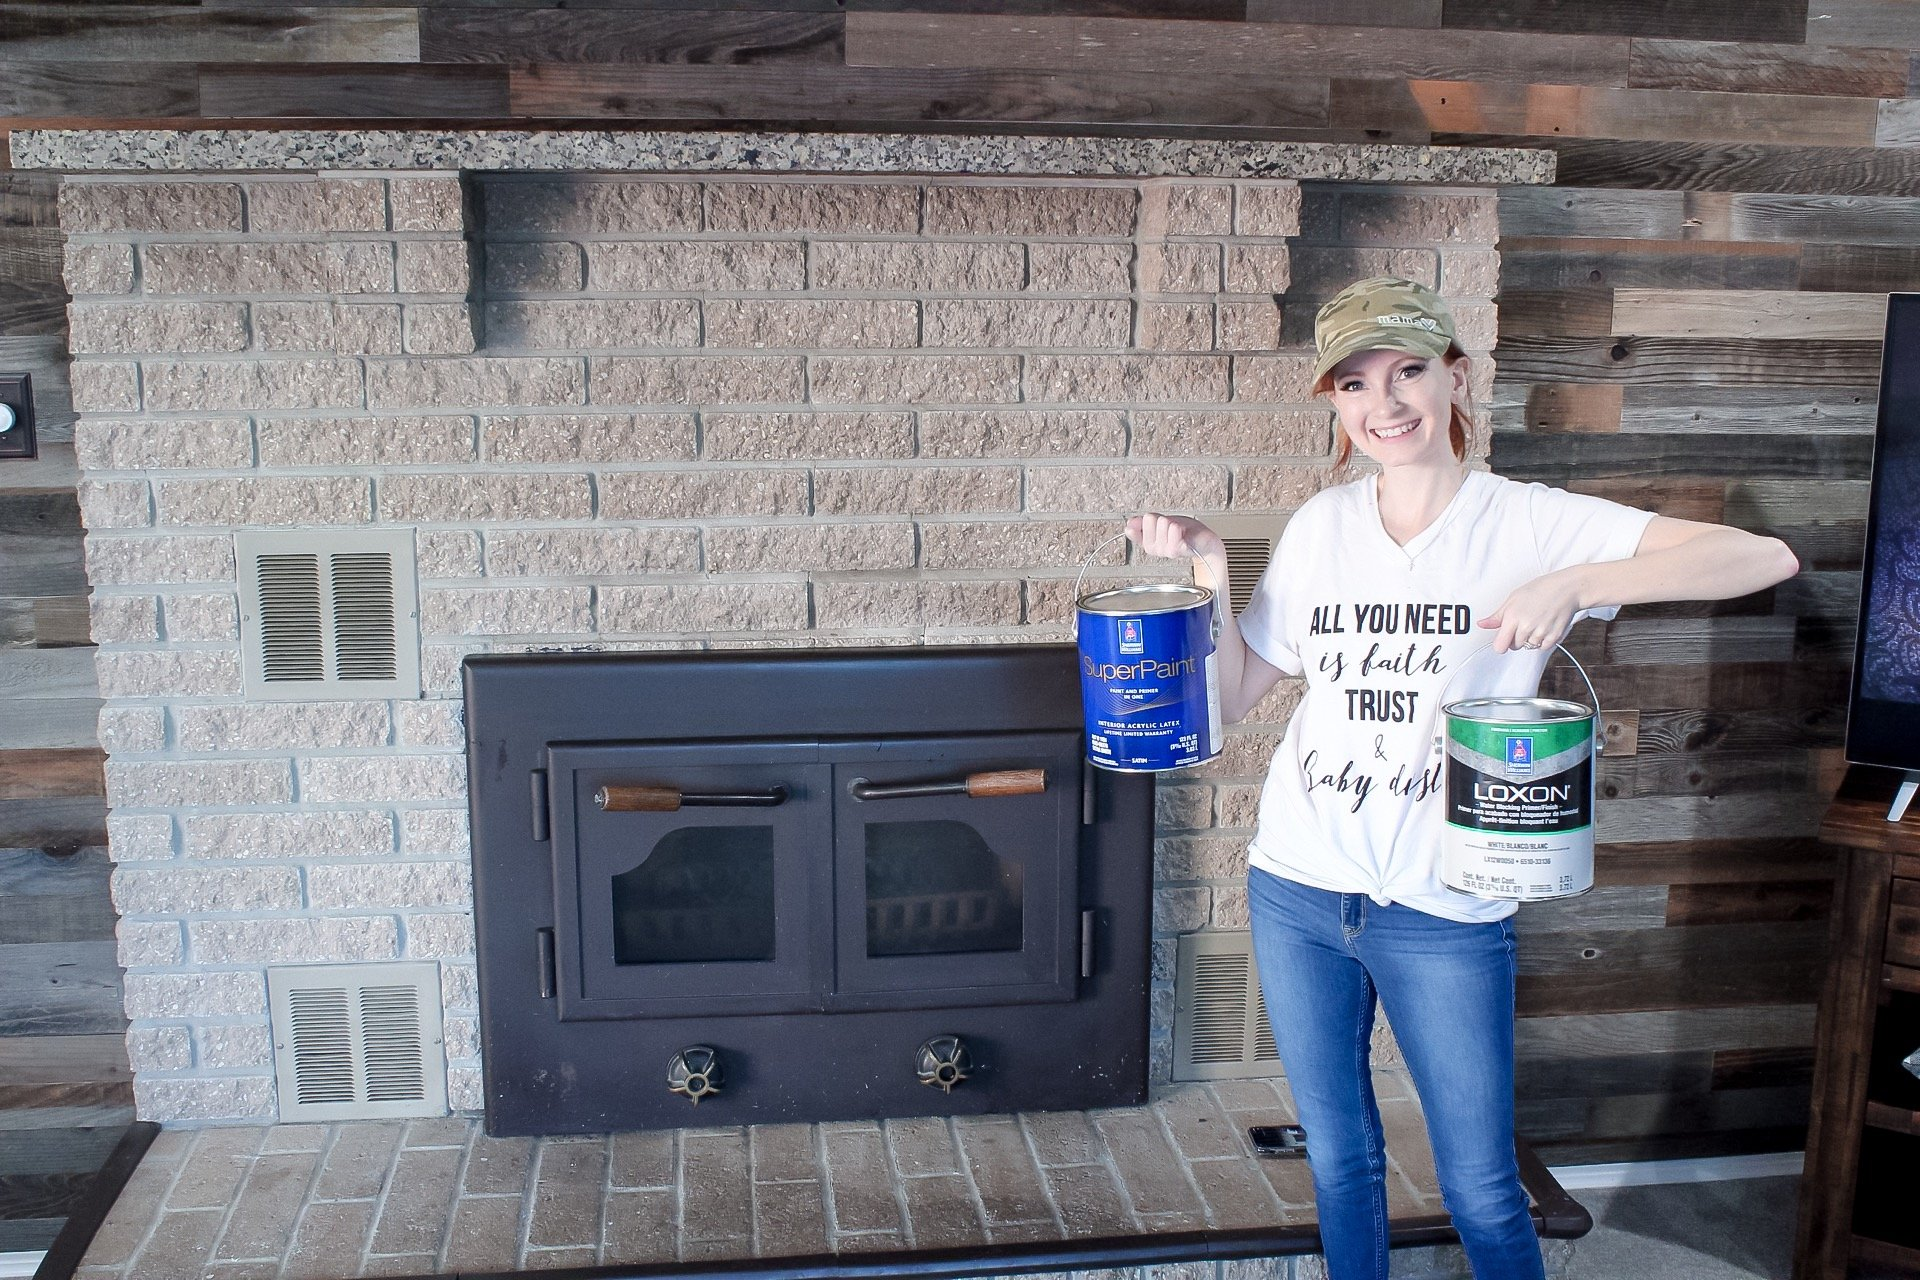 Corinne of Slayathomemother.com holding up paint cans in front of my tan fireplace, ready to paint!